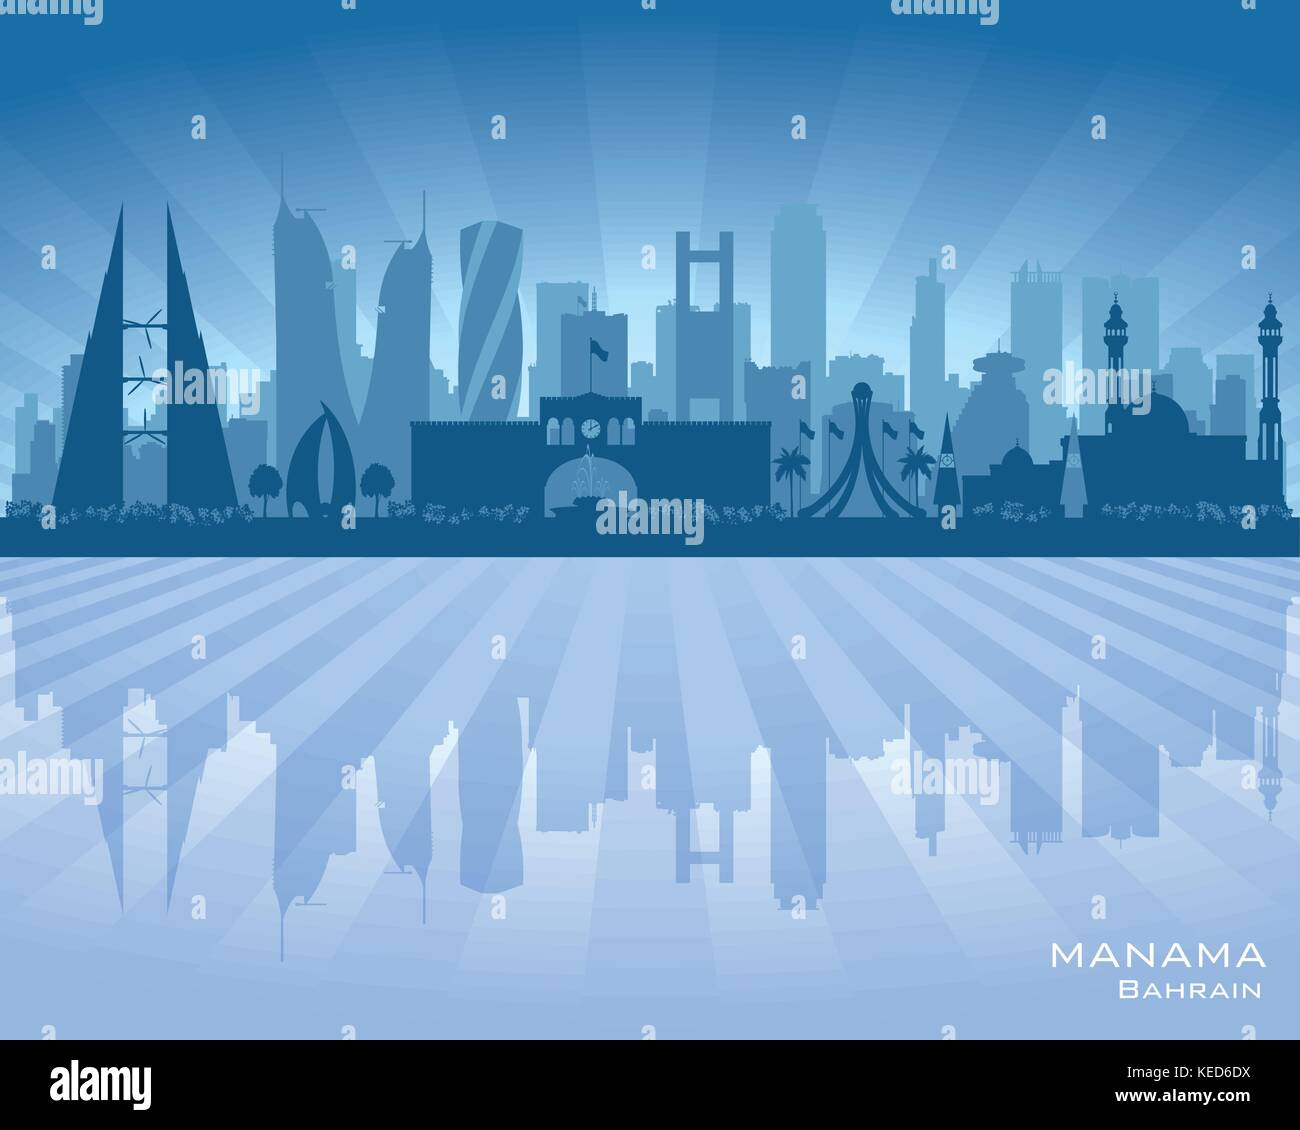 673b47d4d0e1 Manama Bahrain city skyline vector silhouette illustration - Stock Vector